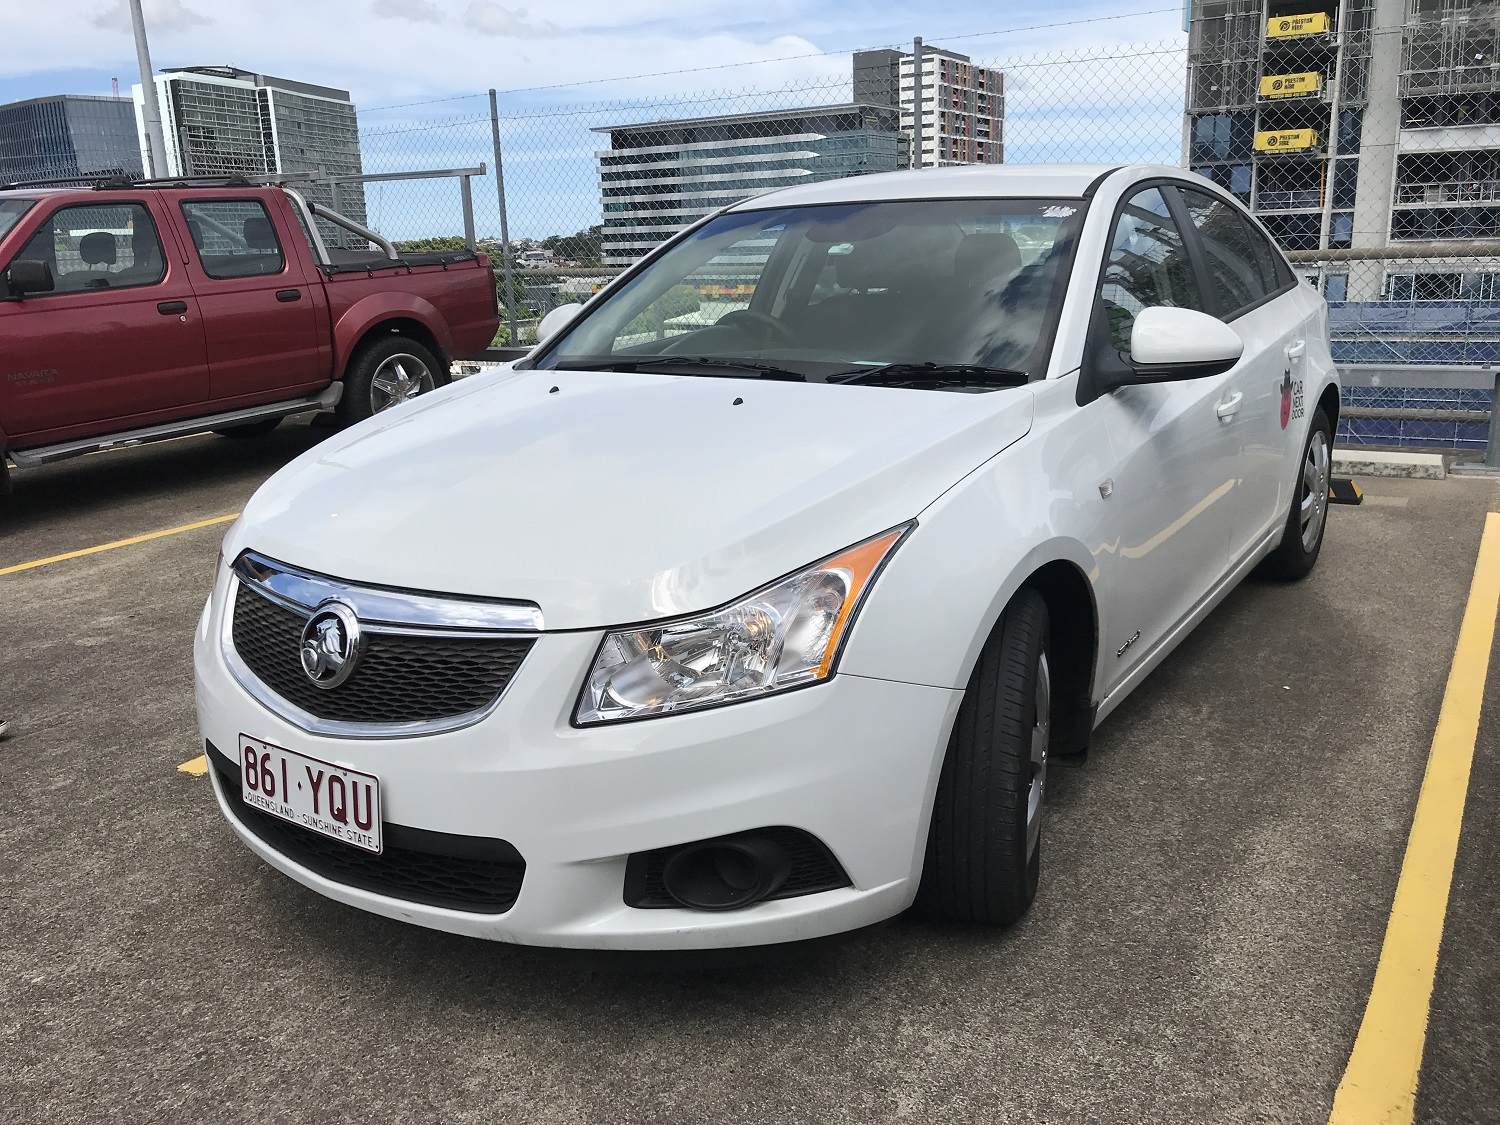 Picture of Abdulrahman's 2013 Holden Cruze